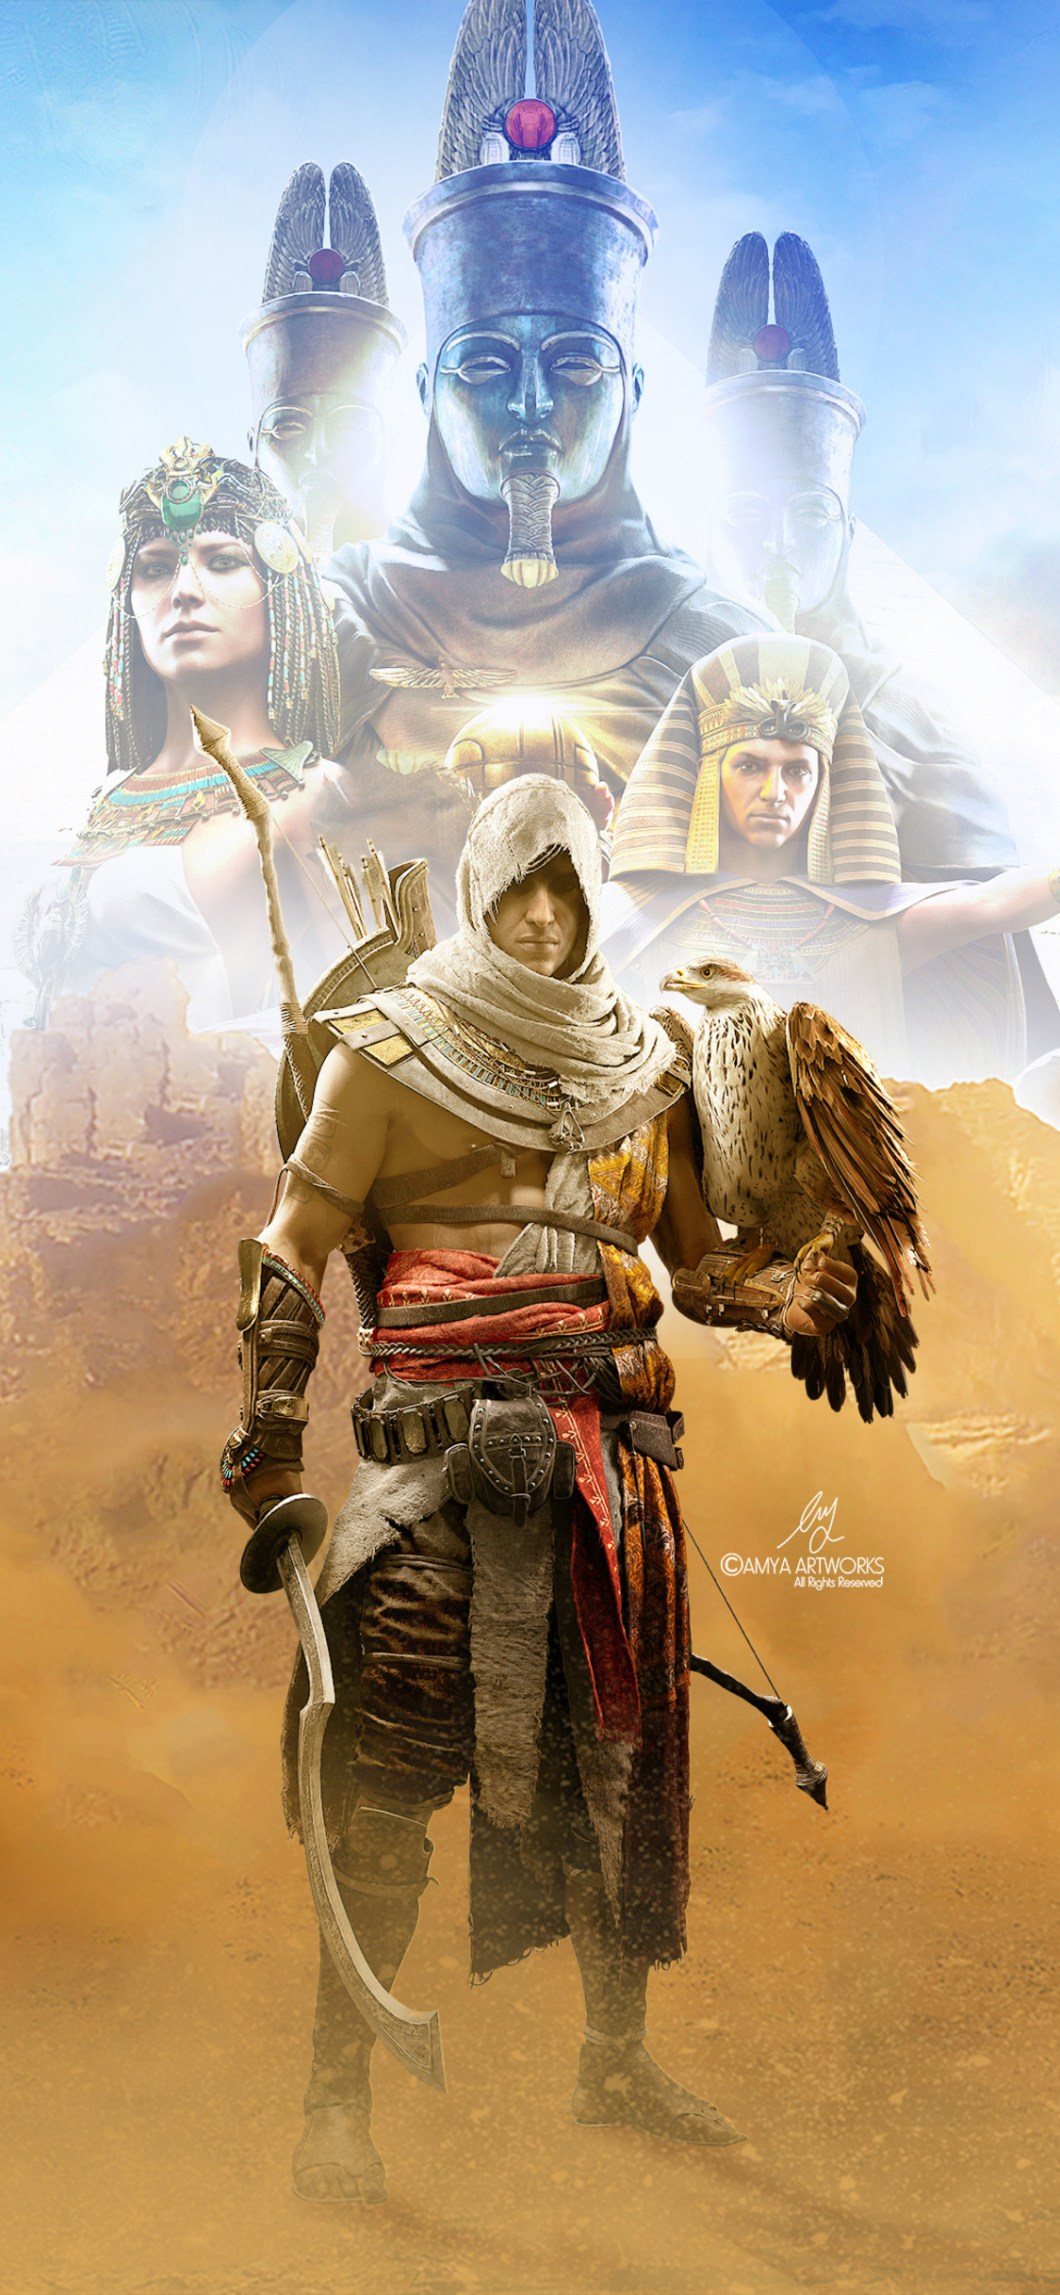 Assassin S Creed Wallpaper Iphone X Bestpicture1 Org